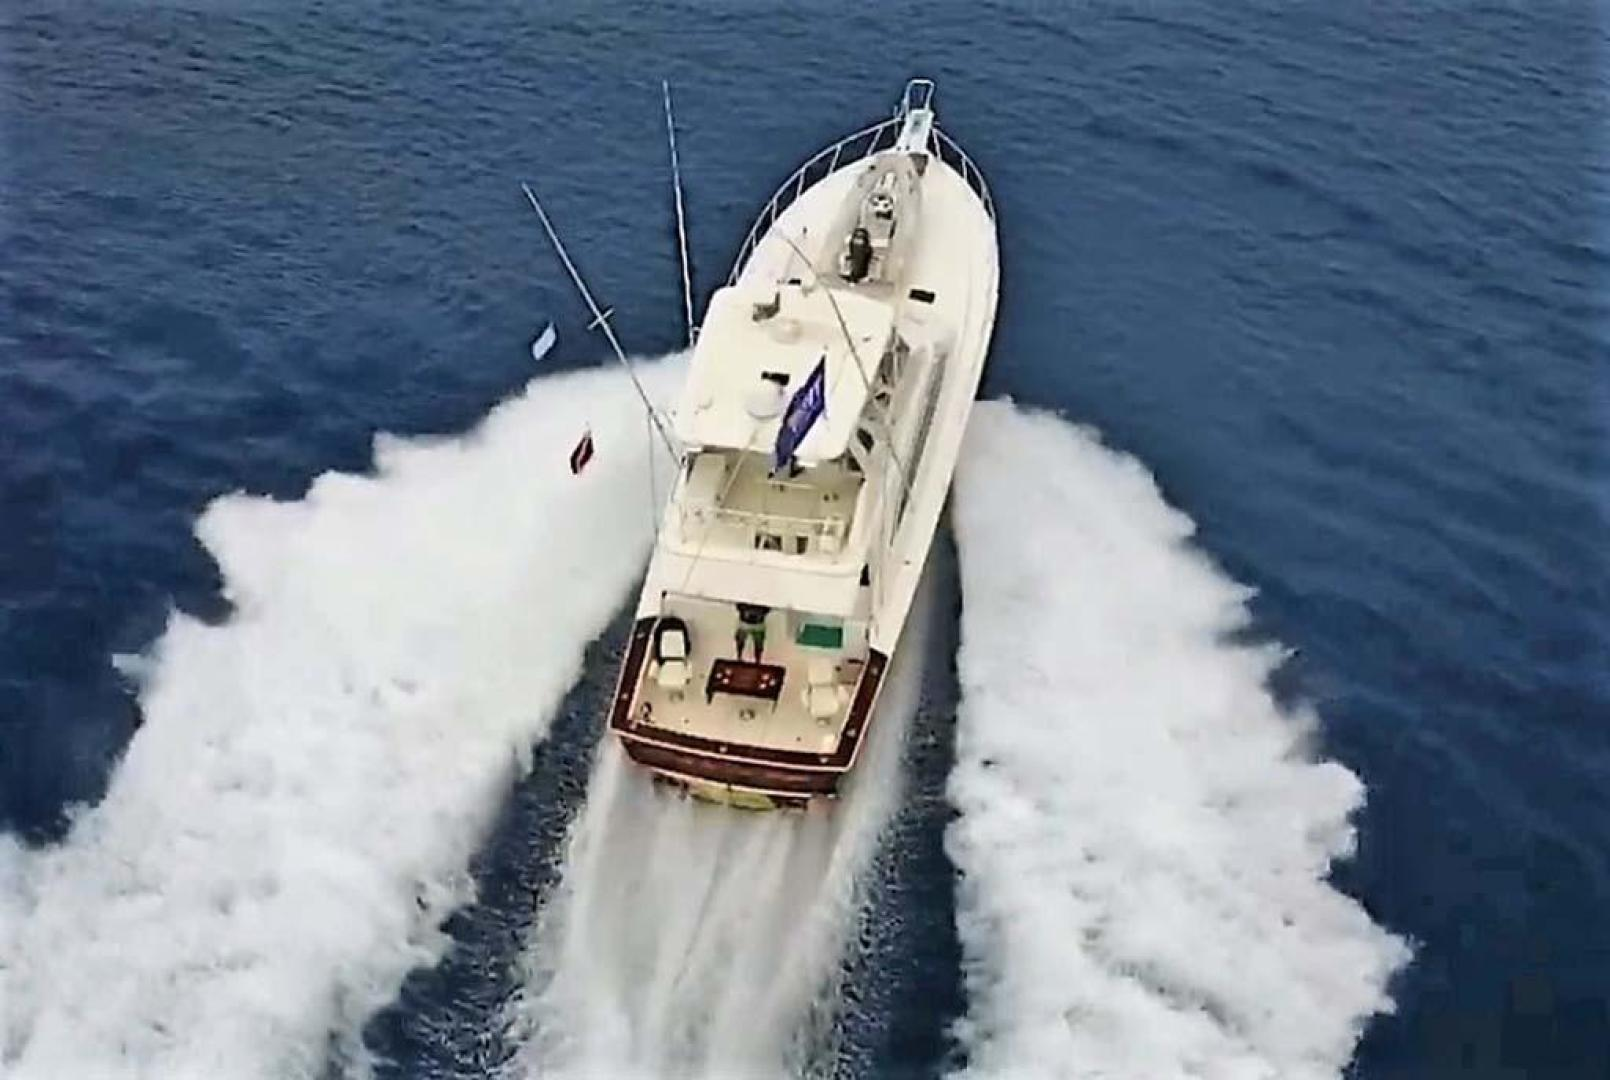 Ocean-Yachts-53-Super-Sport-1998-Made-in-the-Shade-Stuart-United-States-Underway-929949